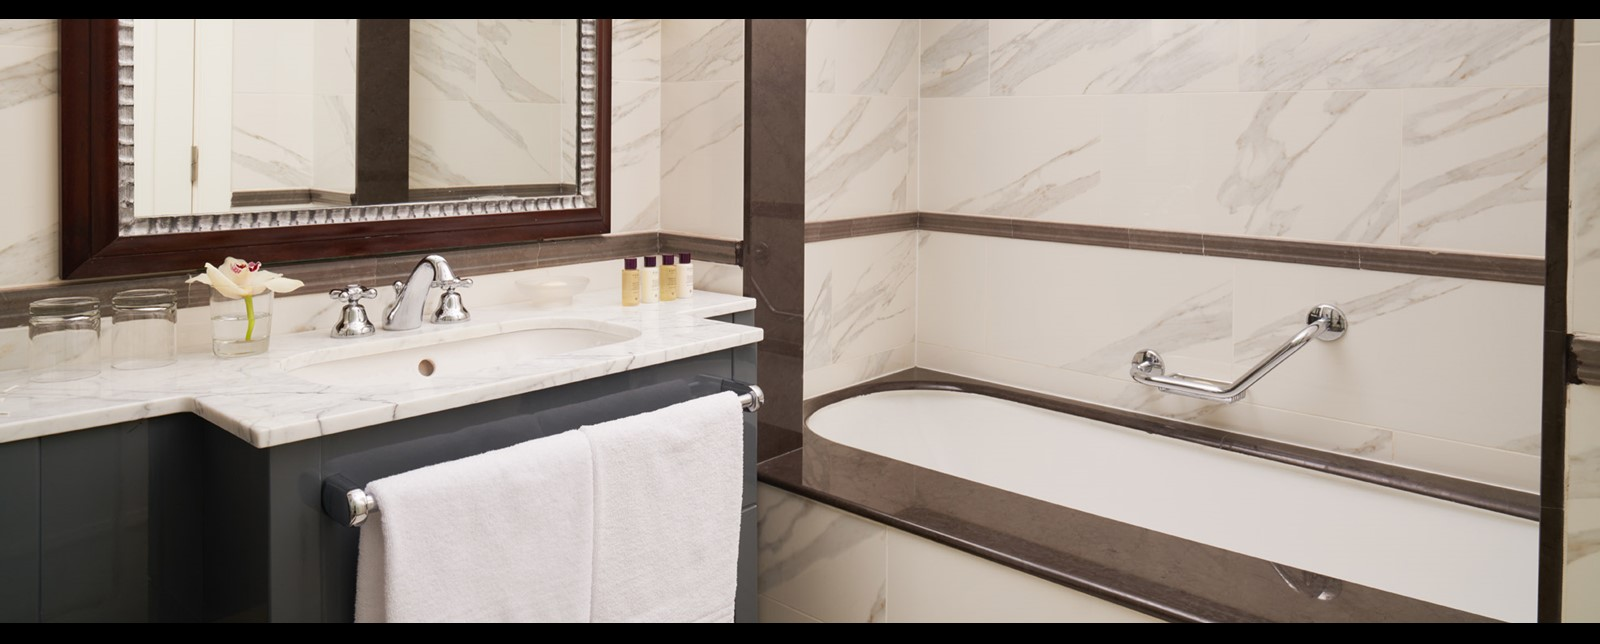 corinthia budapest executive suite bathroom